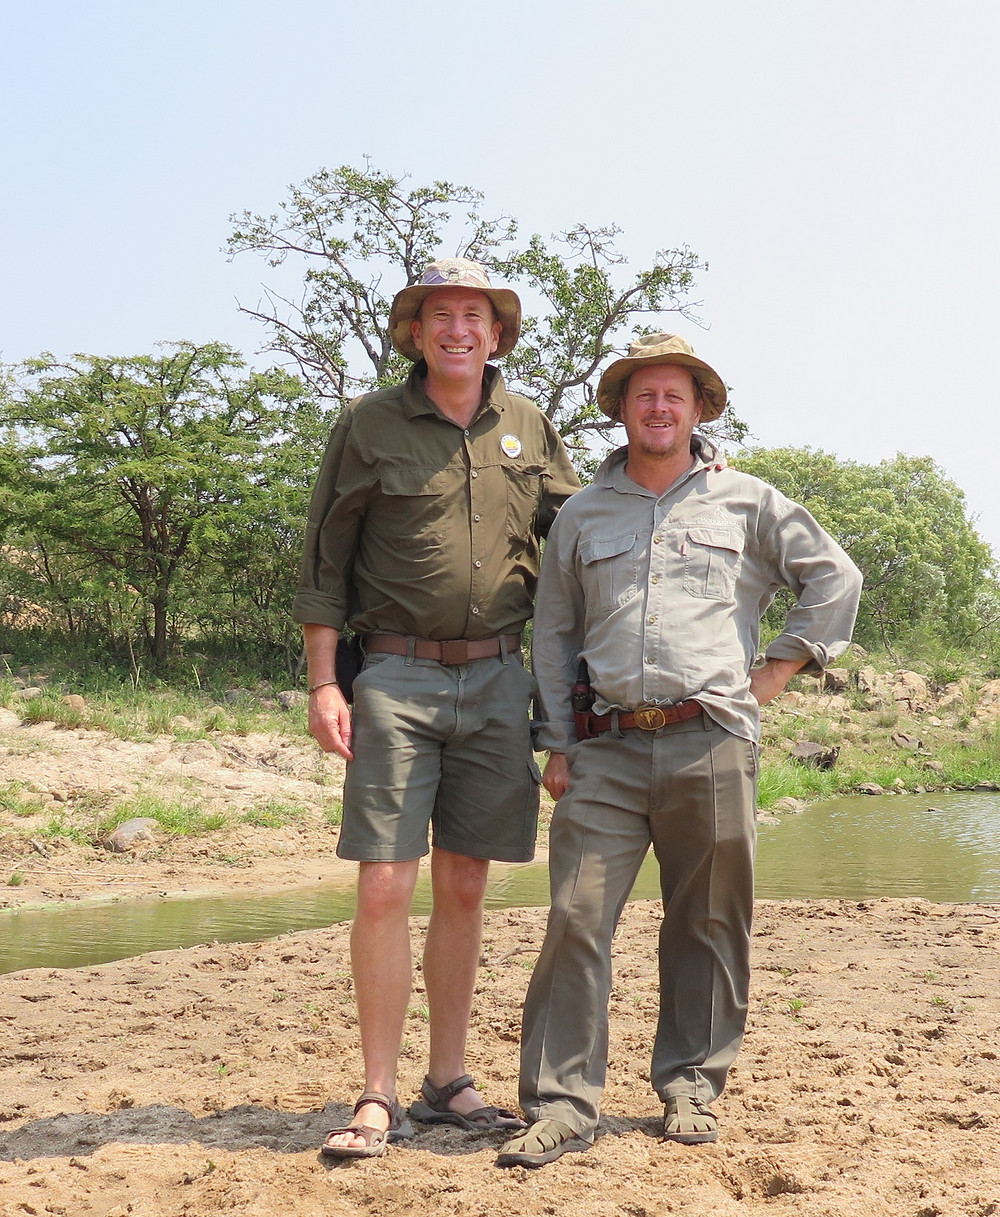 walking safari, walking safaris, kruger park walking safari, african safari, luxury safari, tailor made safari, conservation